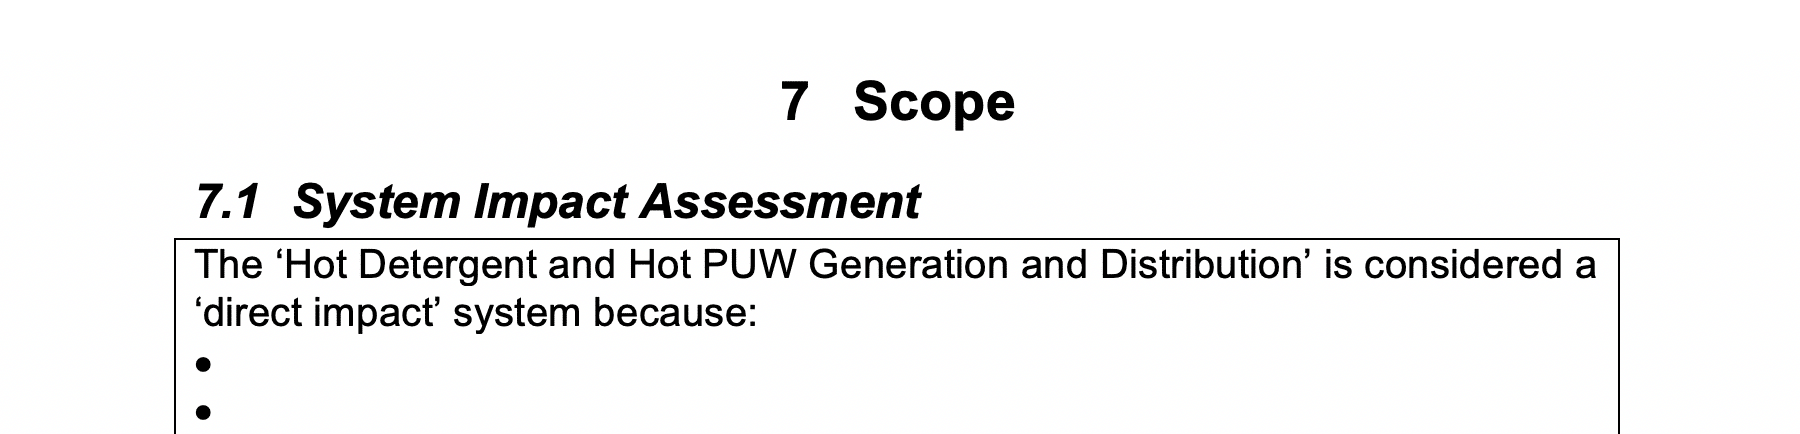 System Impact Assessment GetReskilled